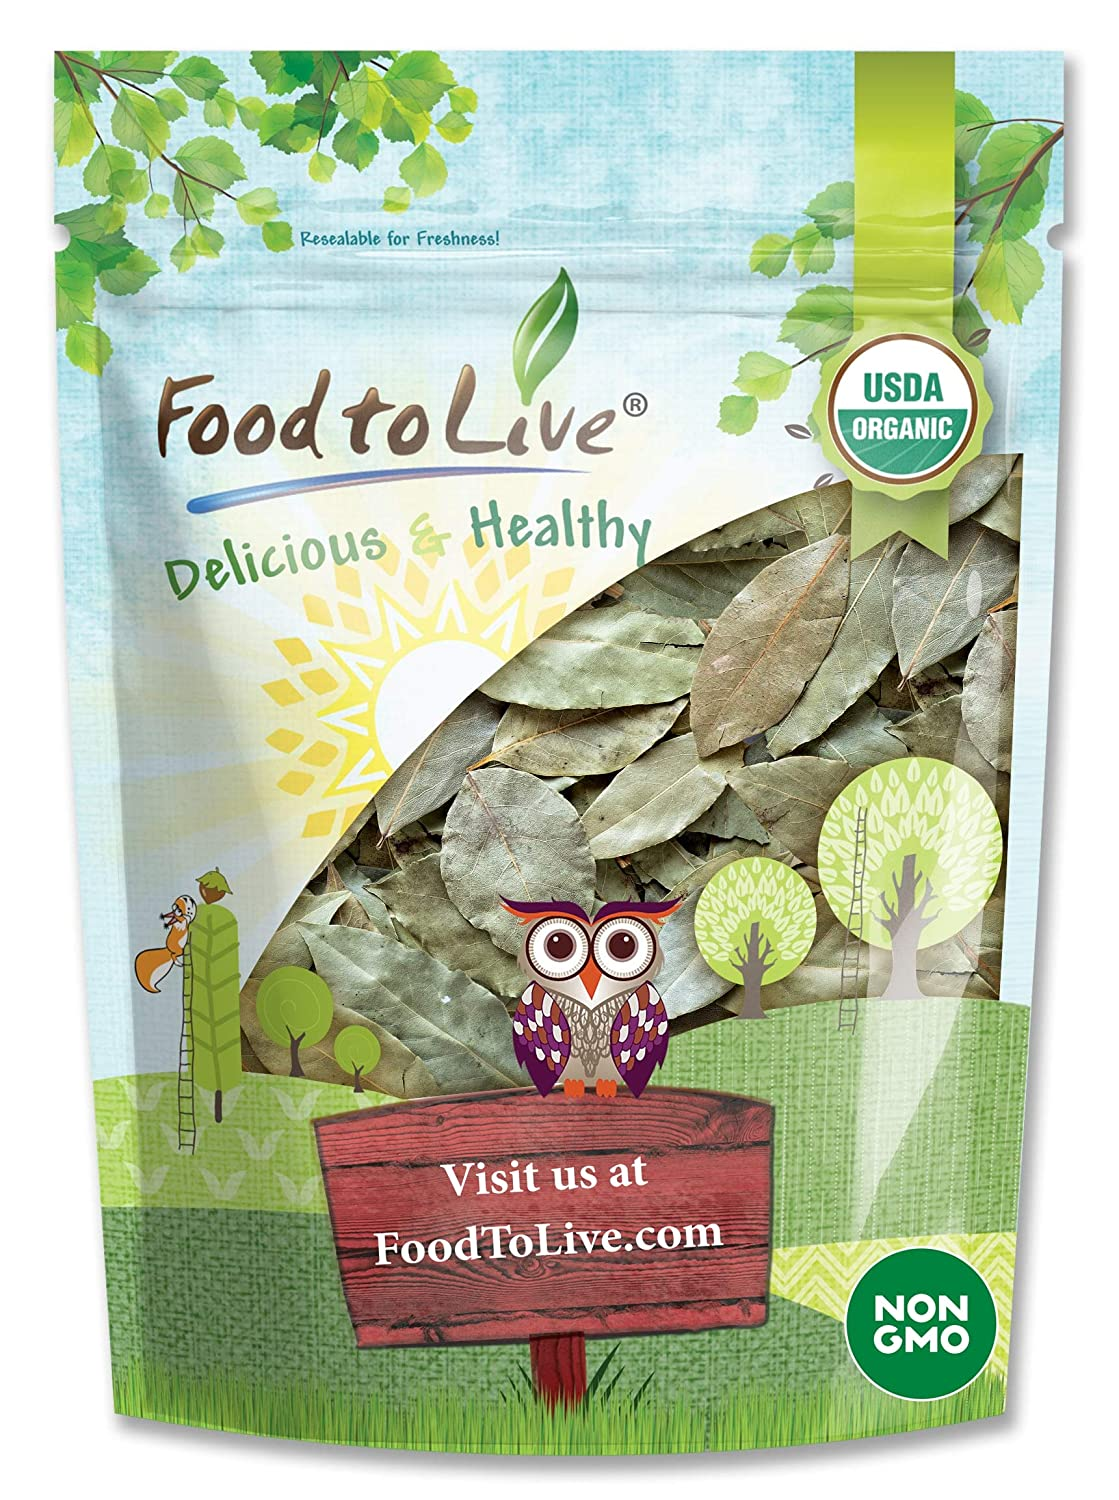 Organic Whole Bay Leaves, 2 Ounces - Non-GMO, Dried, Kosher, Vegan, Bulk, Great for Cooking, Spicing and Seasoning